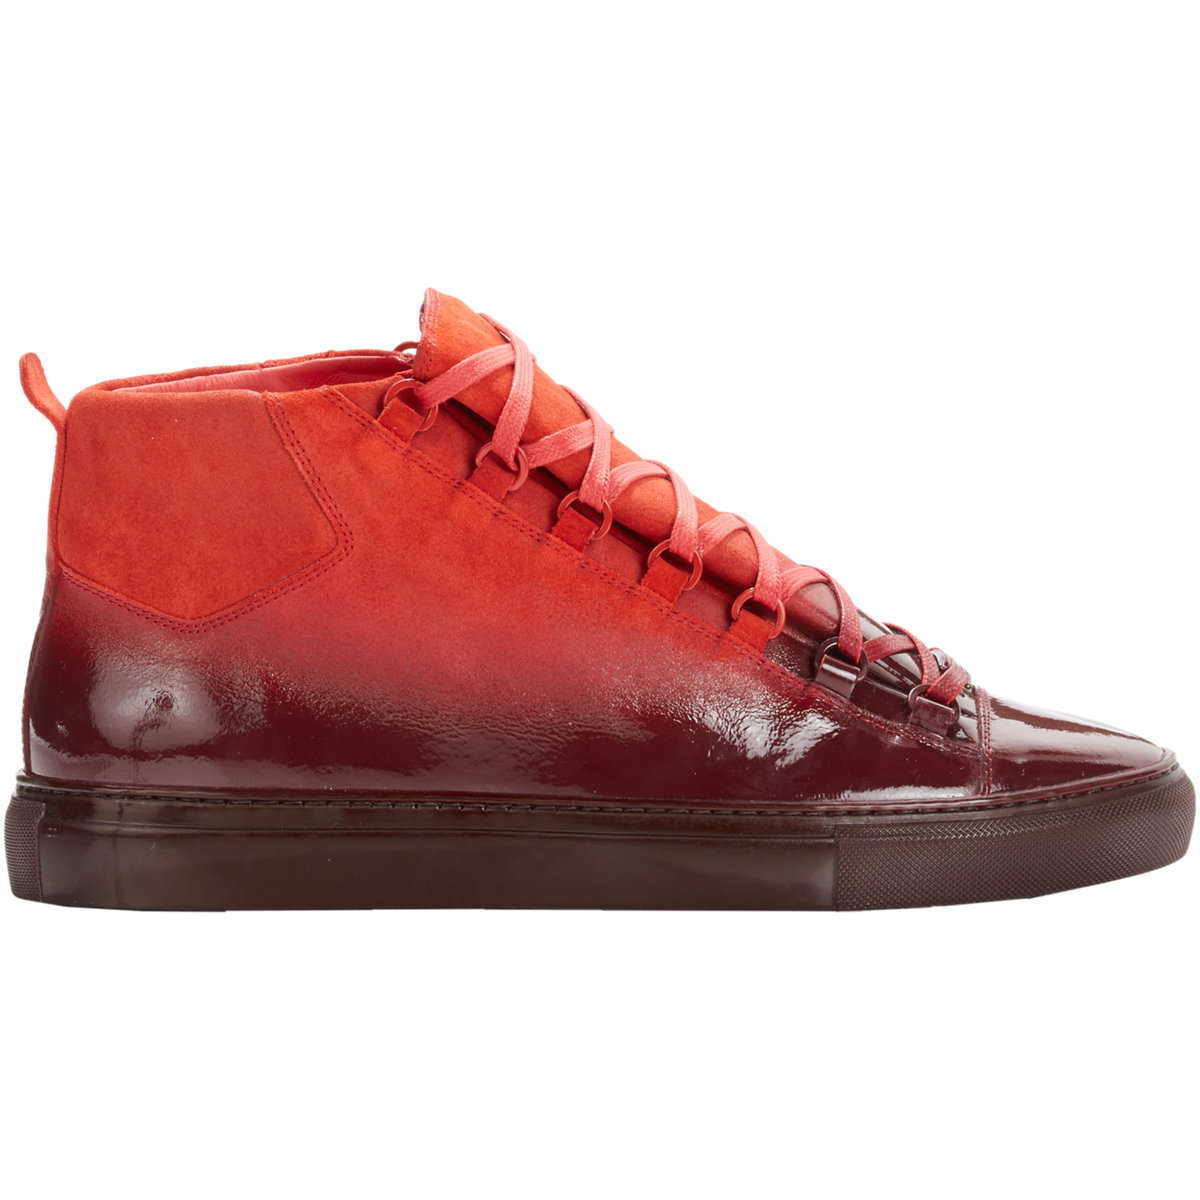 Browse Stylights collection of Mens Balenciaga® Shoes: Best sellers up to −41% products Variety of colors › Shop now! Balenciaga Shoes for Men. Balenciaga. Mens Speed Knit Sneakers-Red Size 7 M. USD $ Delivery: free. Balenciaga.